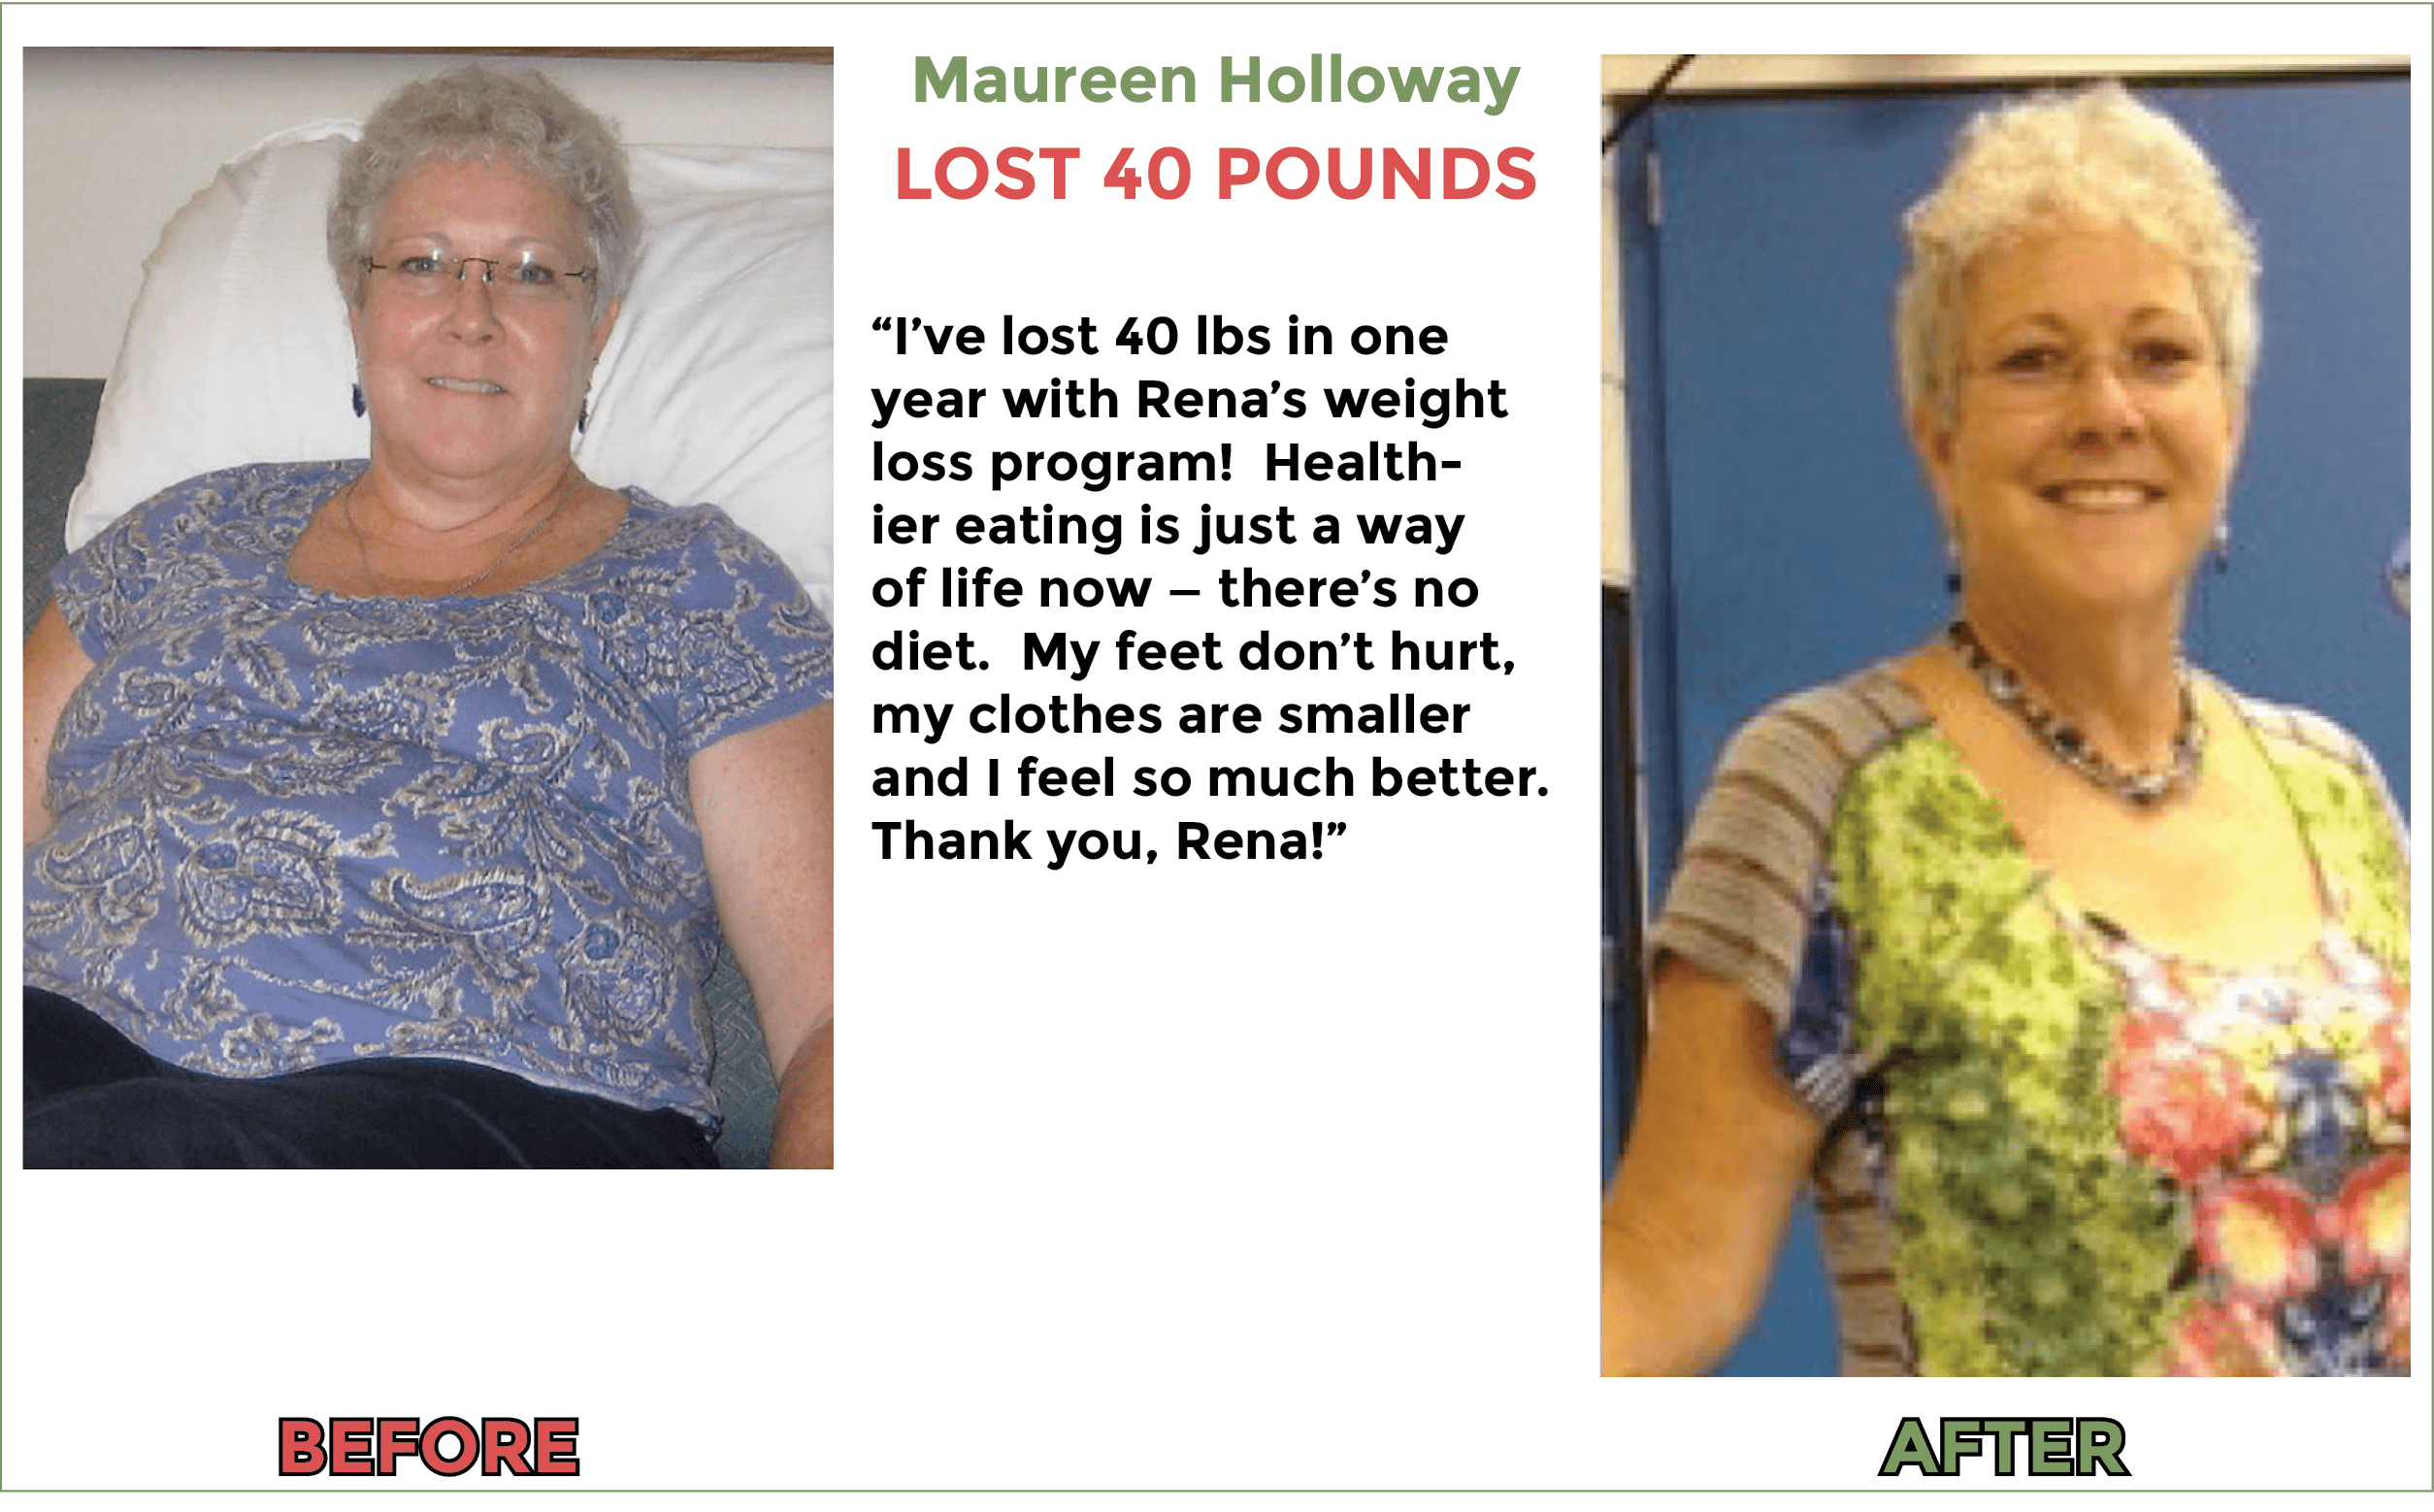 Maureen lost 40 pounds